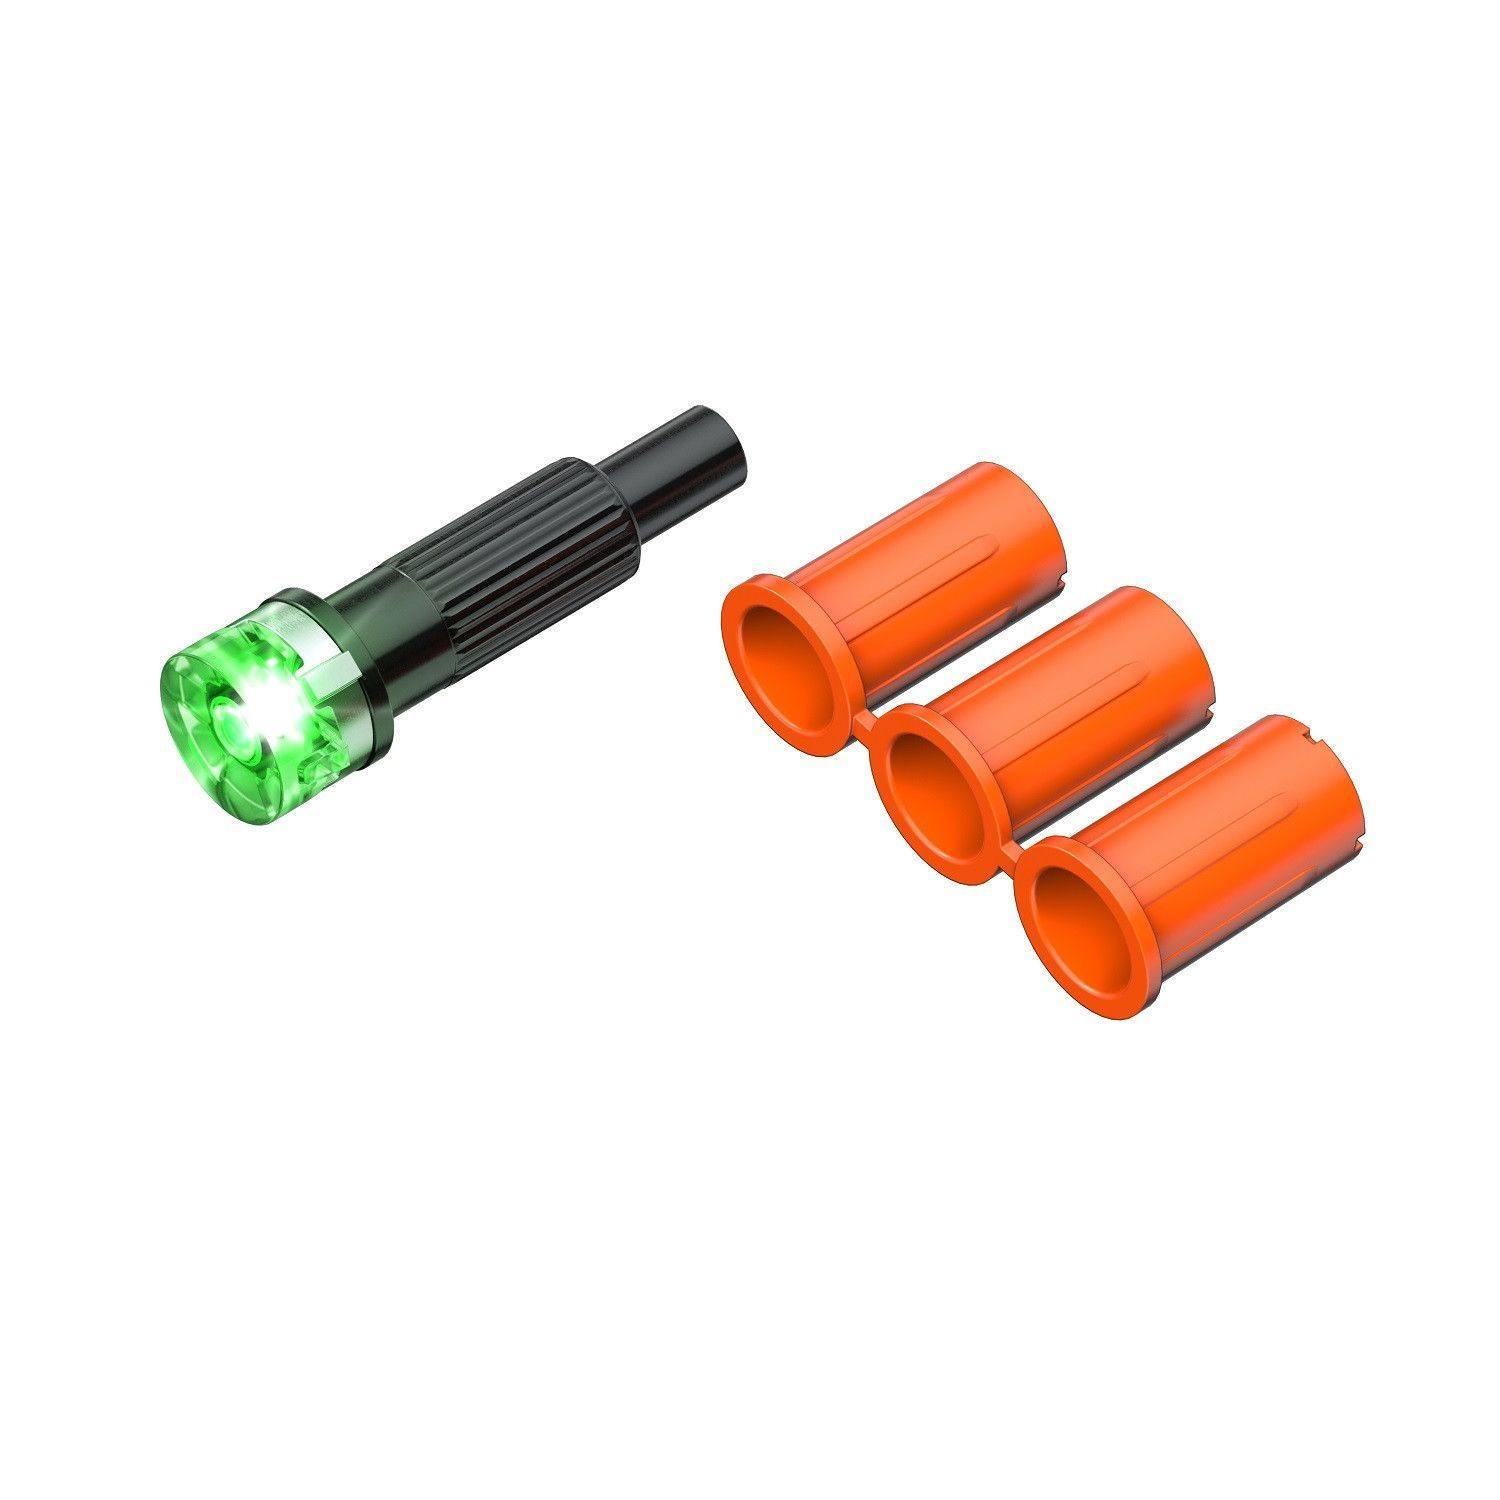 Clean Shot/Nock Out XBOW Lighted Flat Back Nock - Grn 3Pack